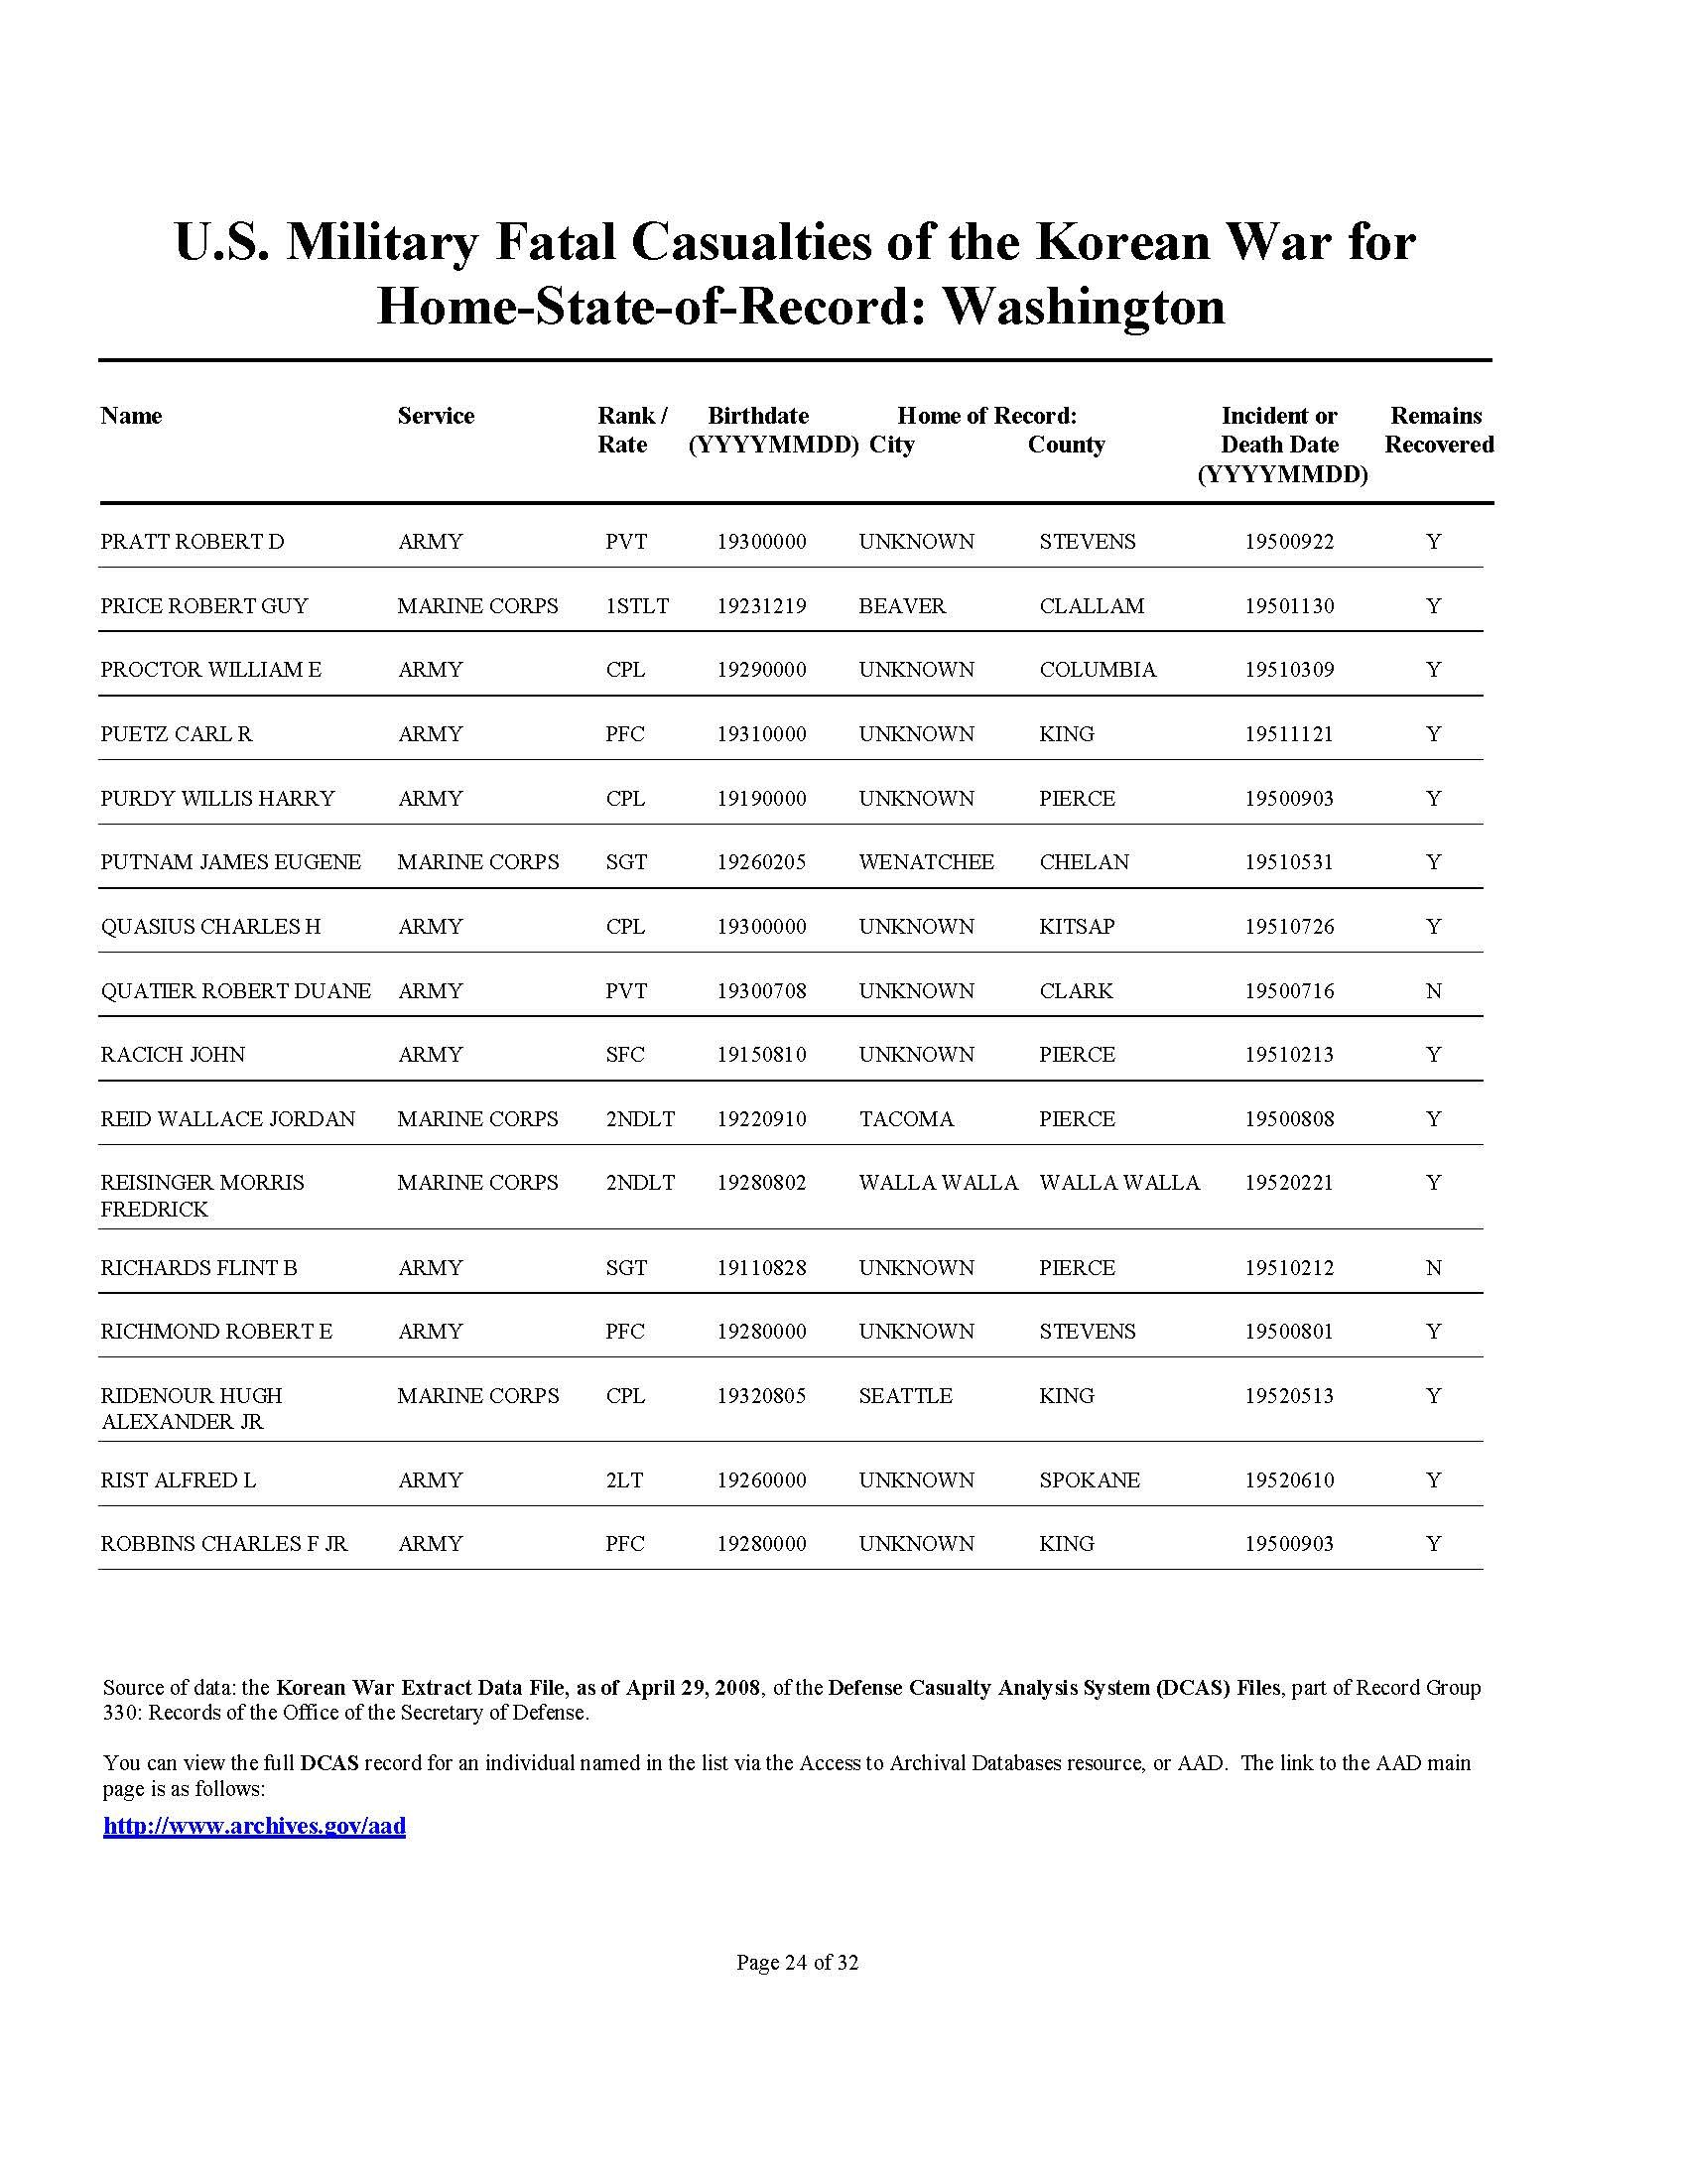 WA State Korean War Casualty List By Name [4]